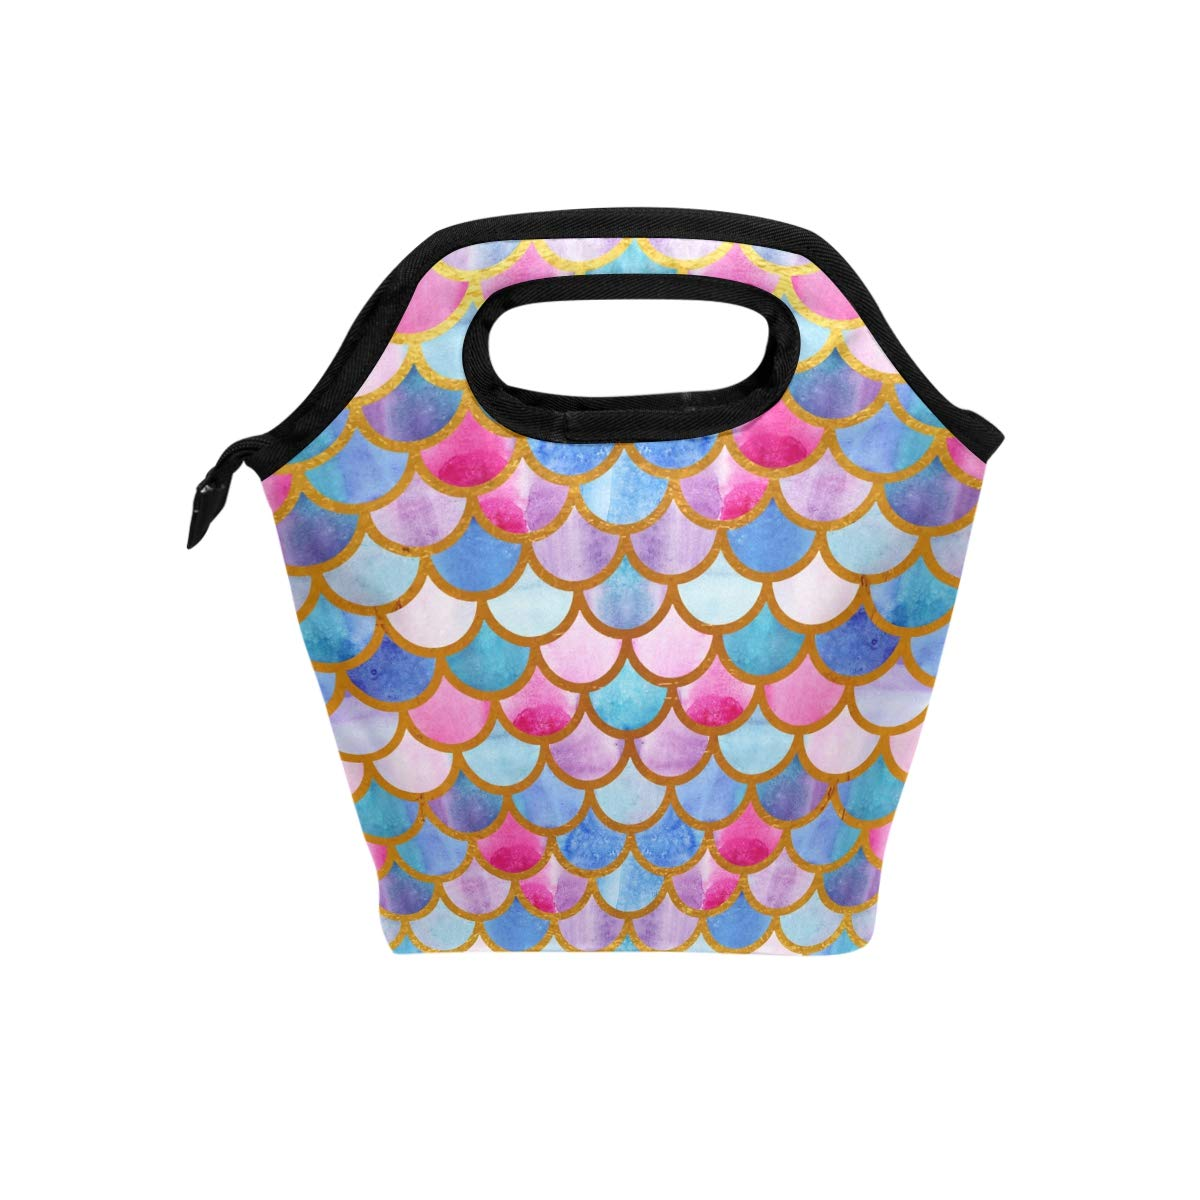 Naanle Watercolor Mermaid Scales Insulated Zipper Lunch Bag Cooler Tote Bag for Adult Teens Kids Girls Boys Men Women, Colorful Lunch Boxes Lunchboxes Meal Prep Handbag for School Office